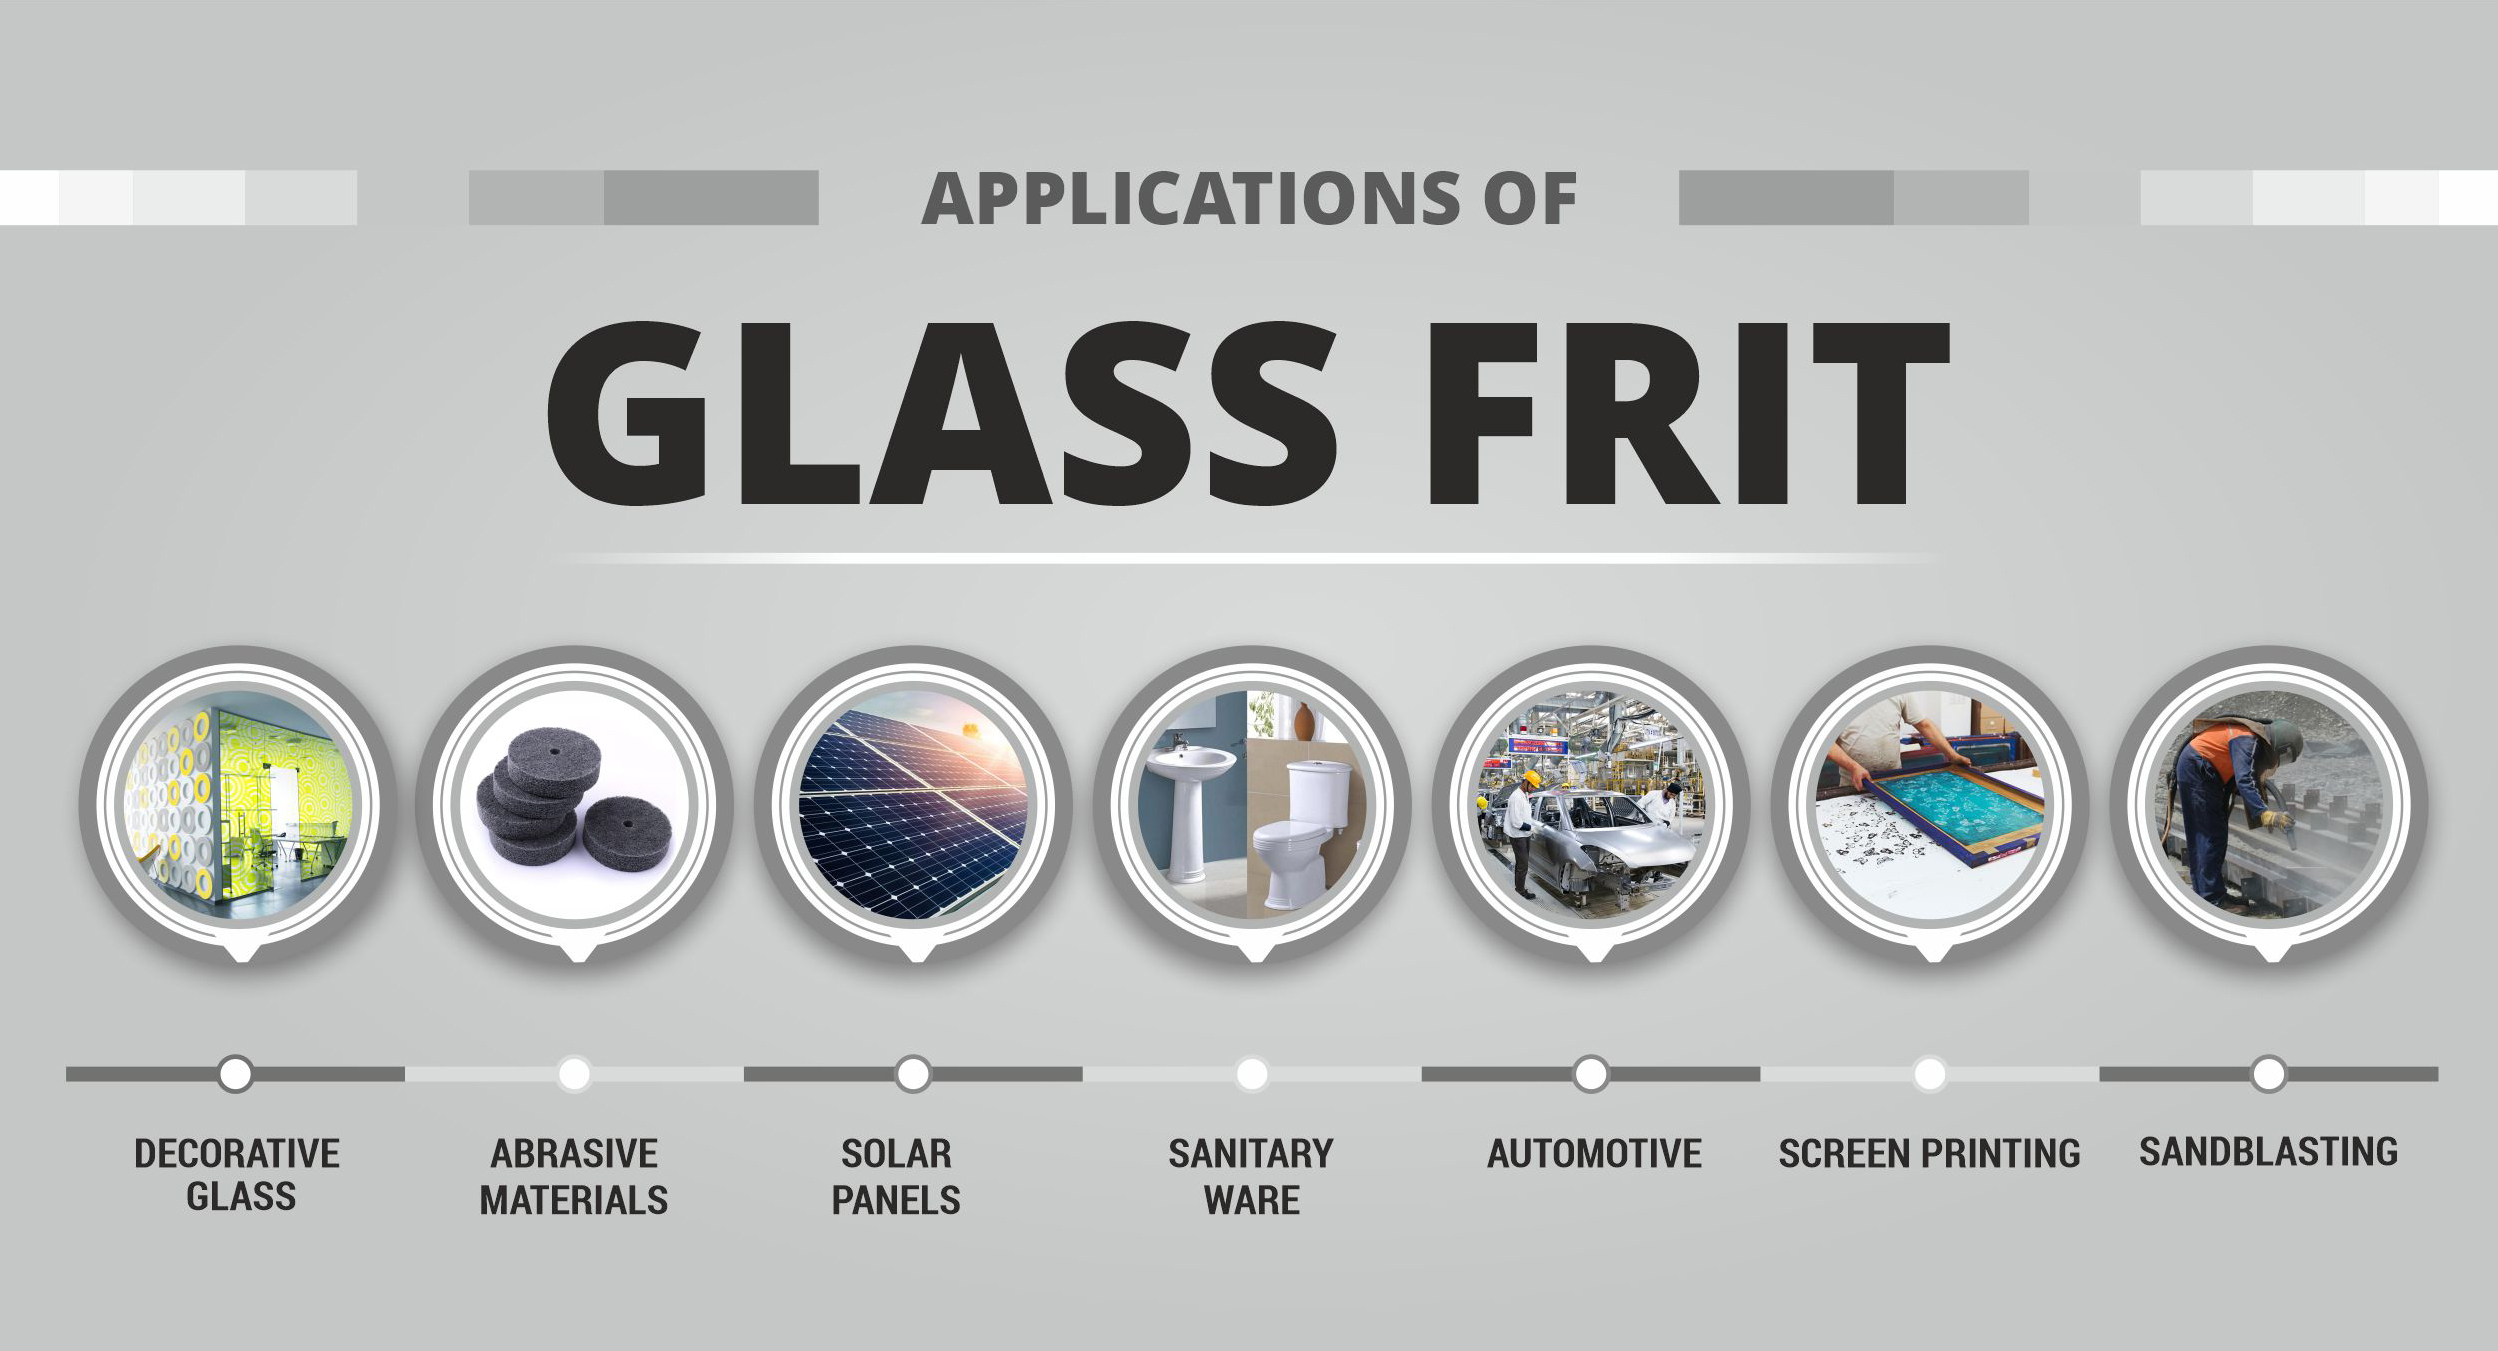 Applications of Glass Frit